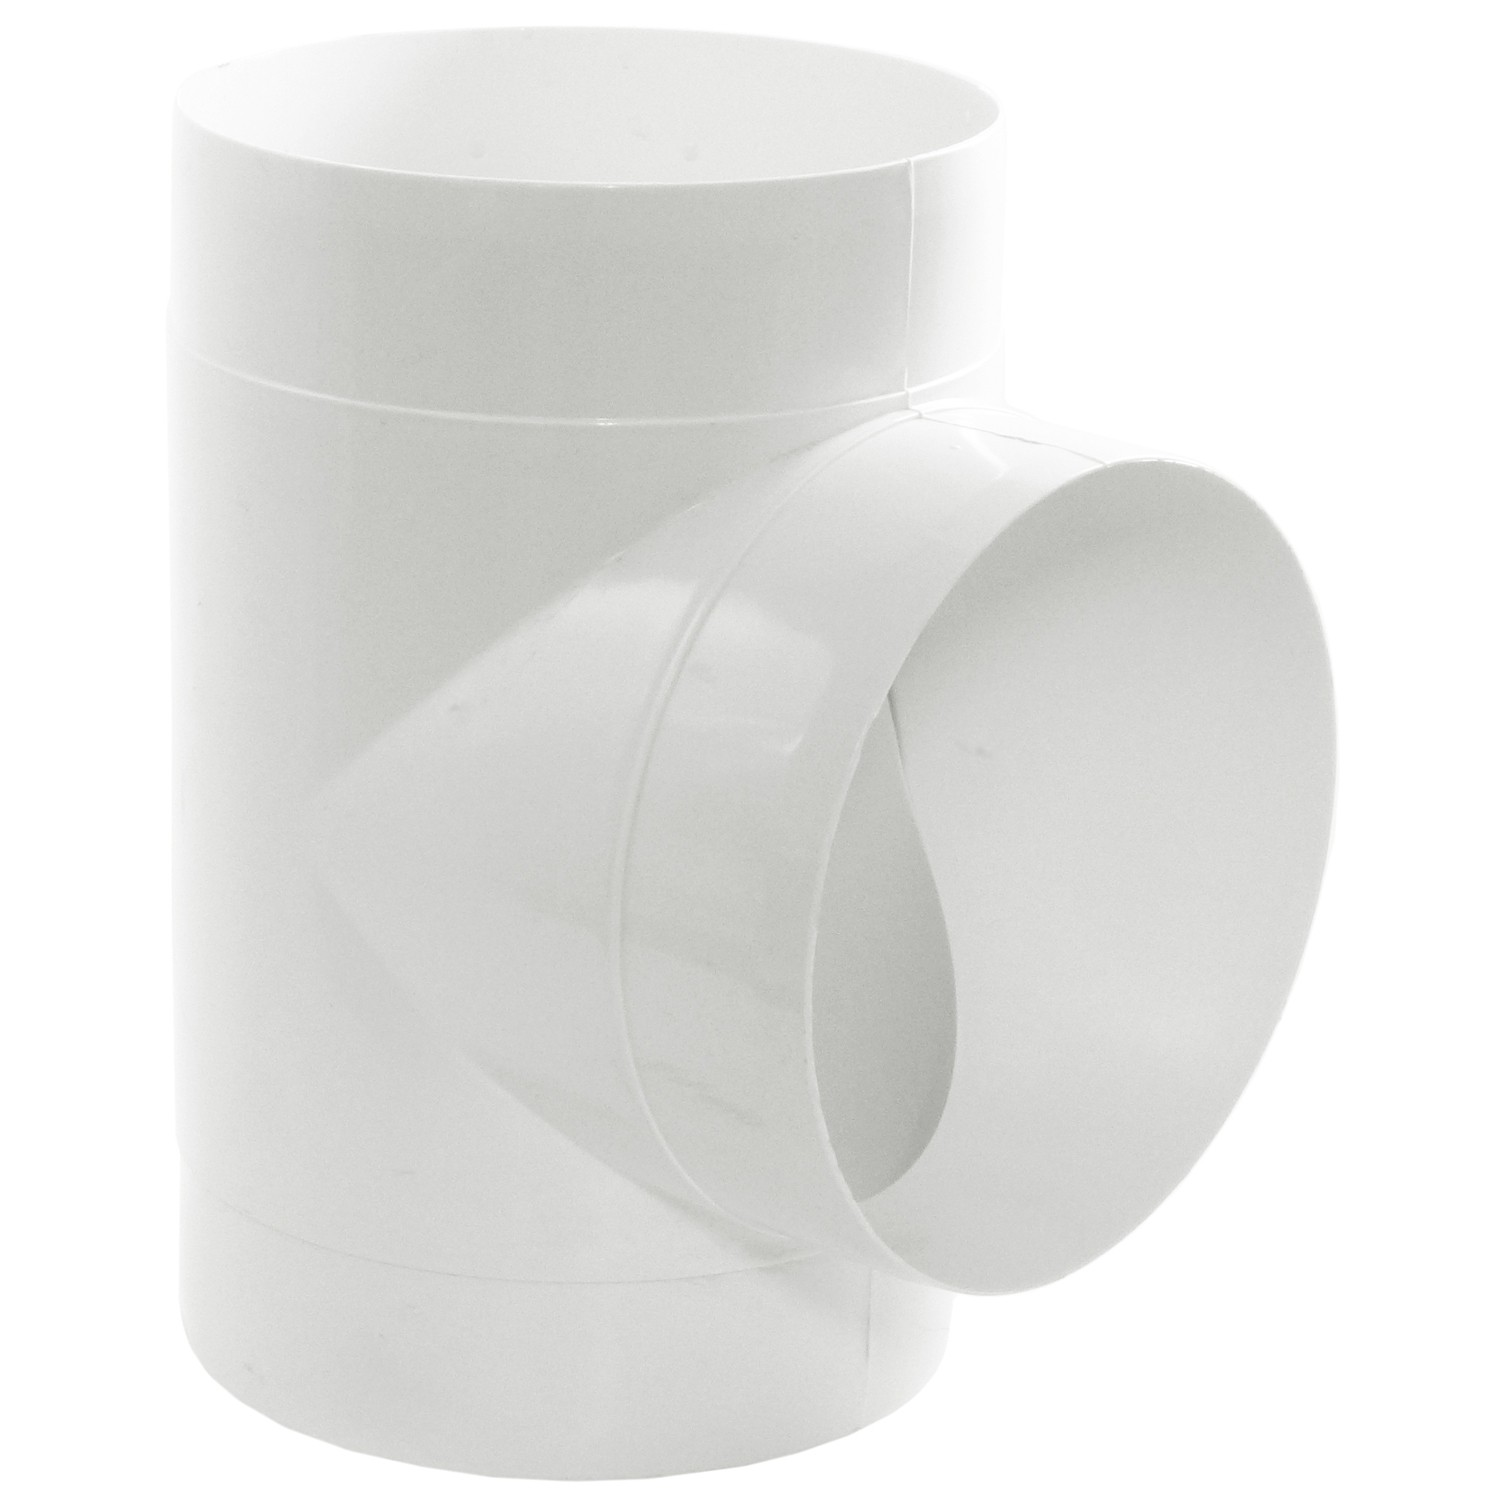 Manrose Round Ducting Pipe T Piece - White, 150mm